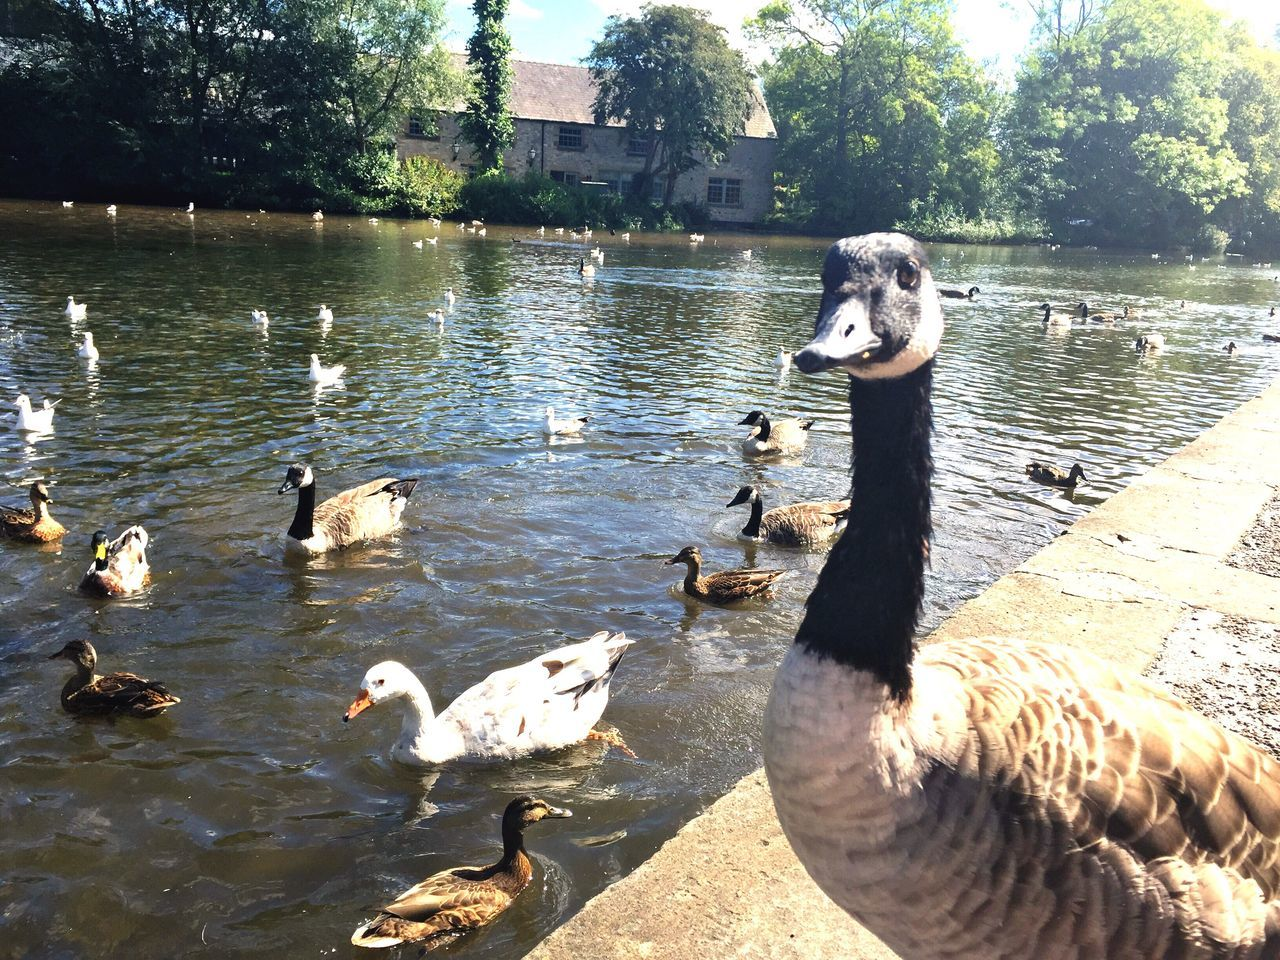 lake, animal themes, animals in the wild, water, bird, nature, animal wildlife, goose, day, tree, lakeshore, water bird, outdoors, no people, togetherness, geese, young animal, sunlight, swimming, swan